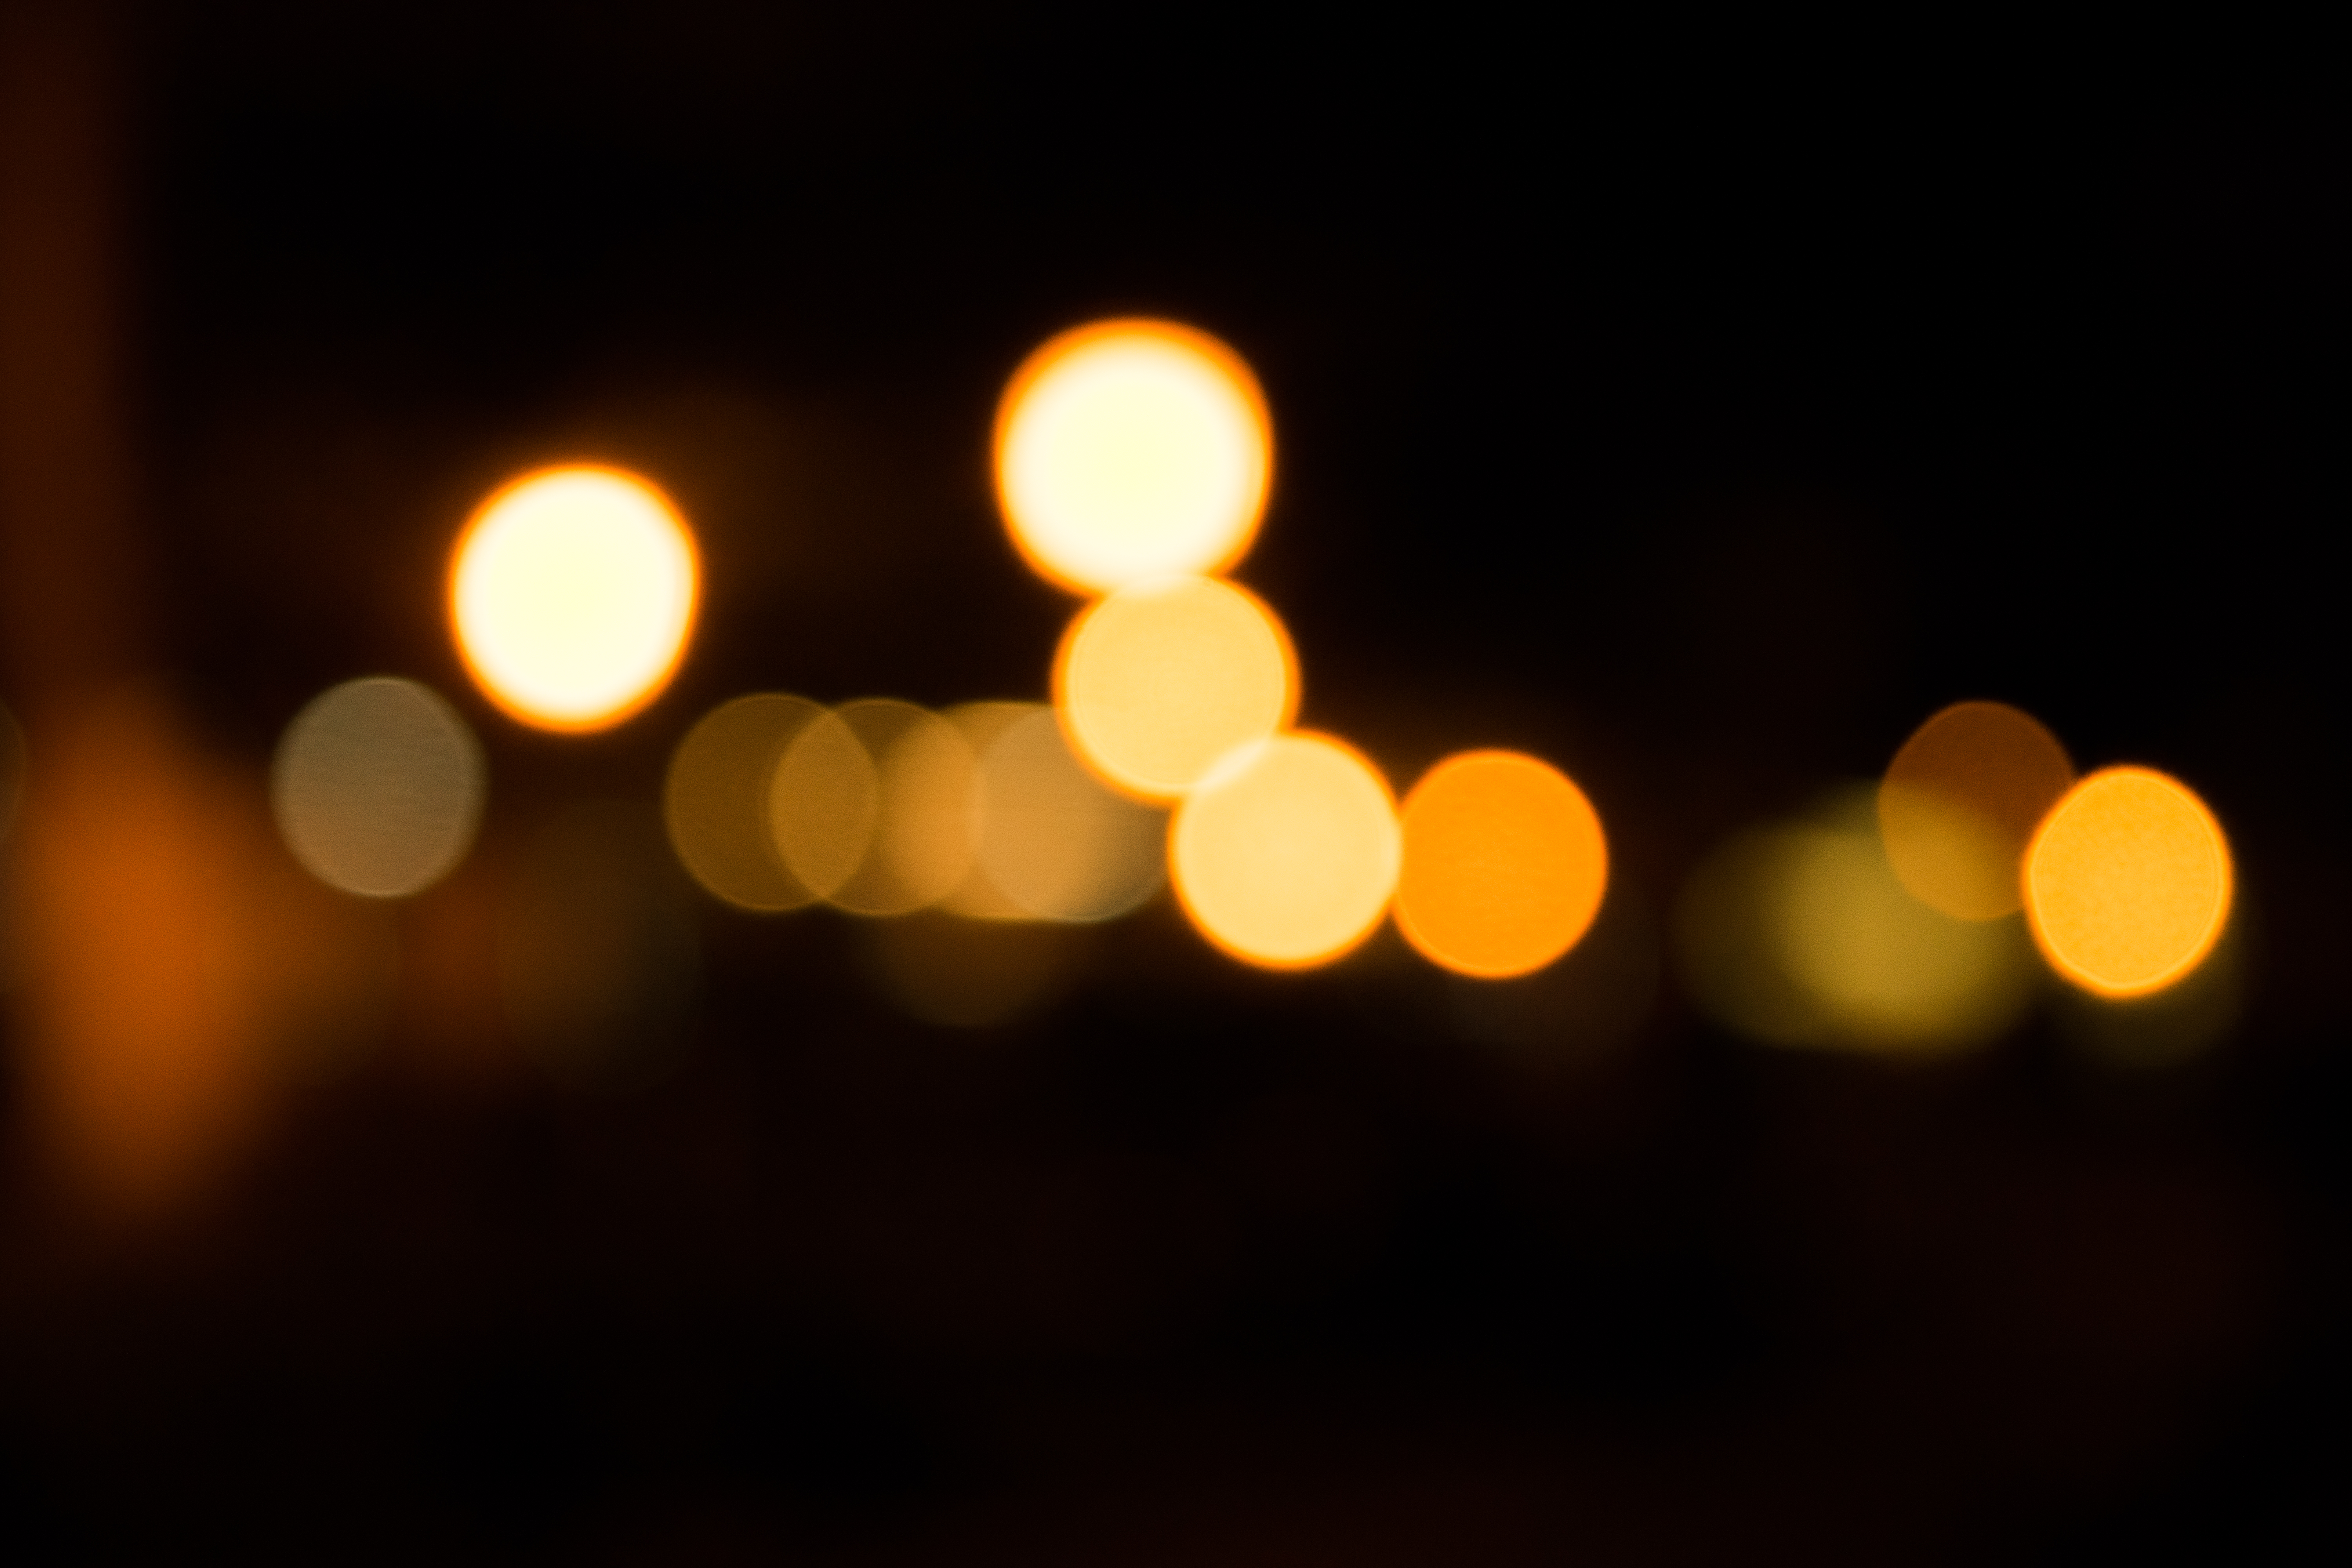 Free stock photo of light, city, lights, dark